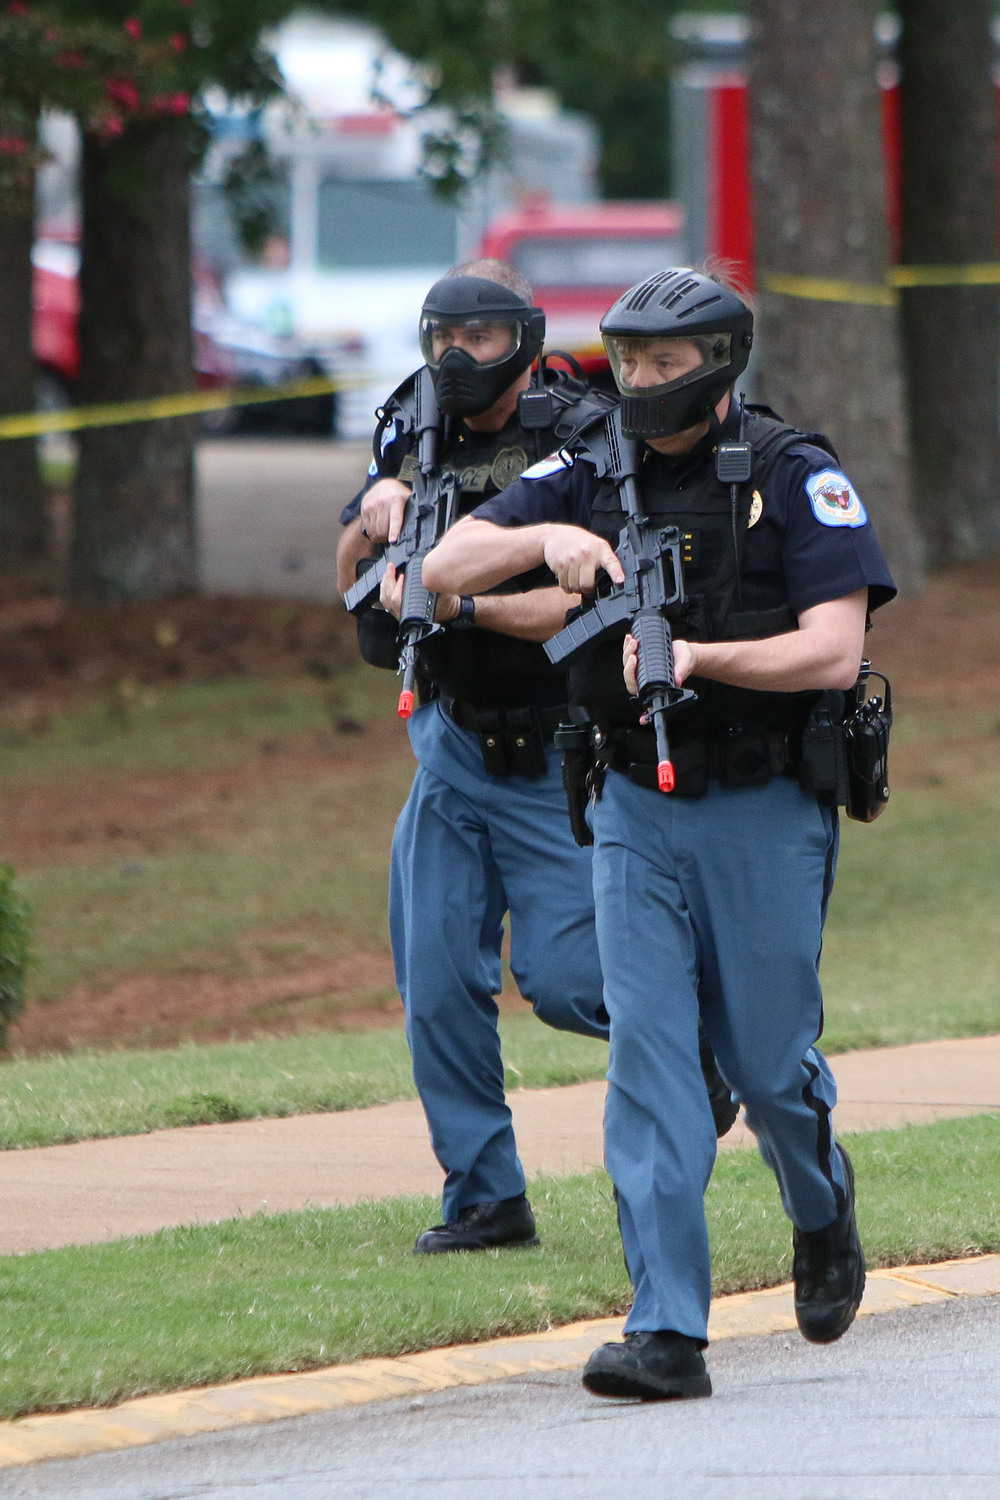 Two officers run as they arrive on the scene of simulated active shooter event for training at the Marietta KSU Campus on Monday. The annual training involves all officers in Cobb. Staff - Emily Selby